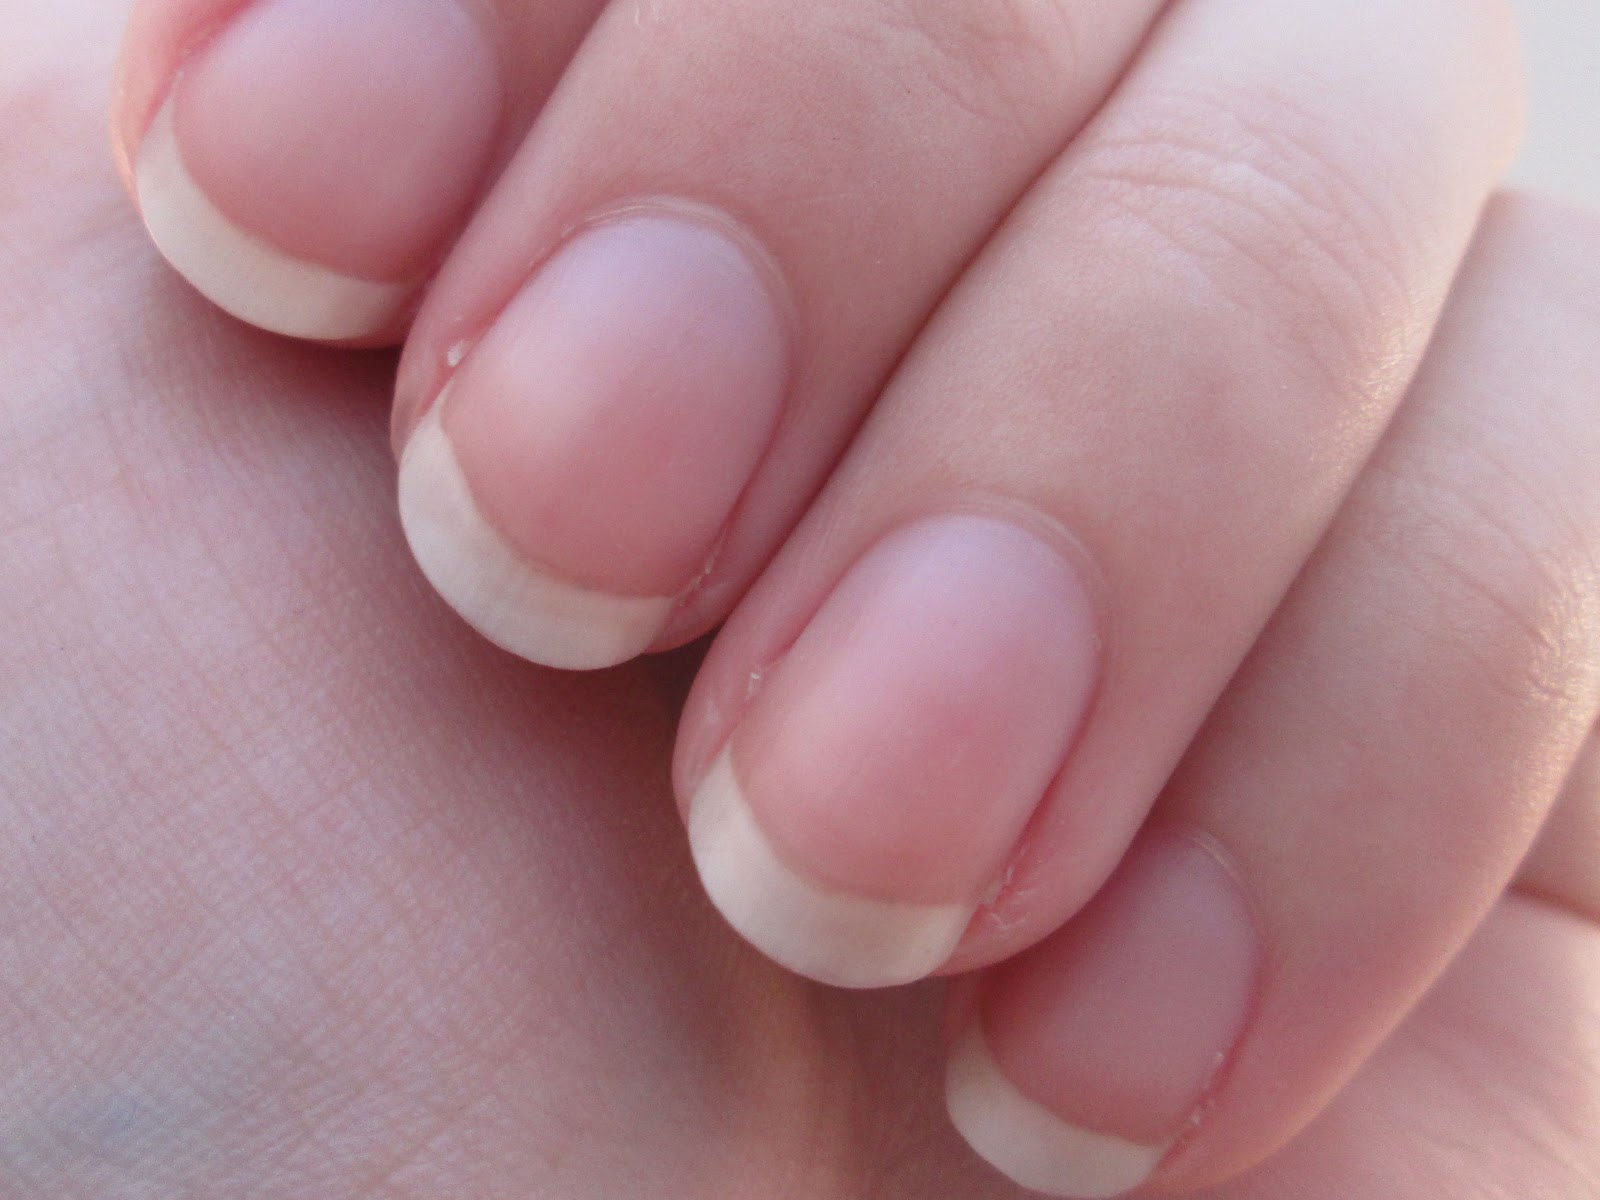 Ever Wondered What The Half Moon Shape On Your Nails Mean ...